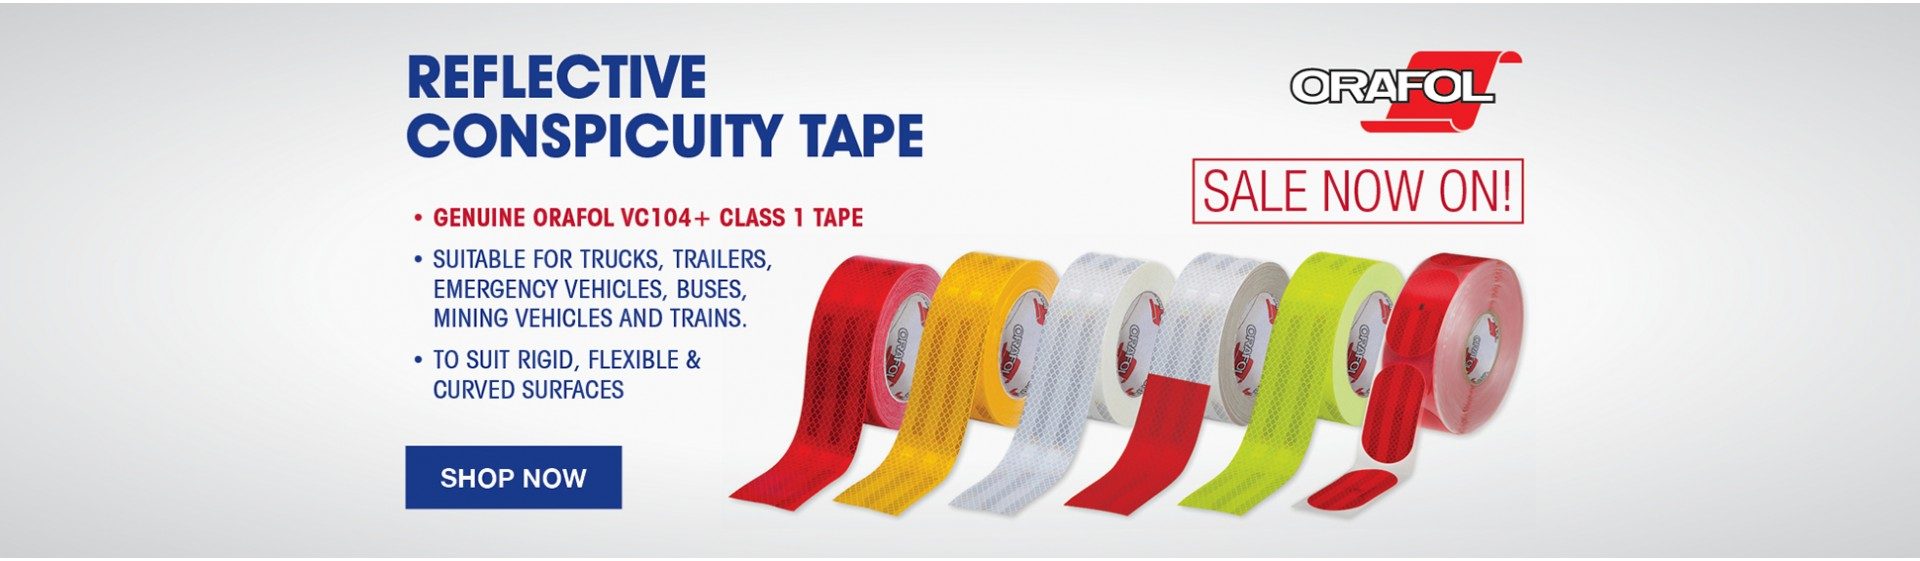 ORALITE REFLECTIVE CONSPICUITY TAPE CLASS 1